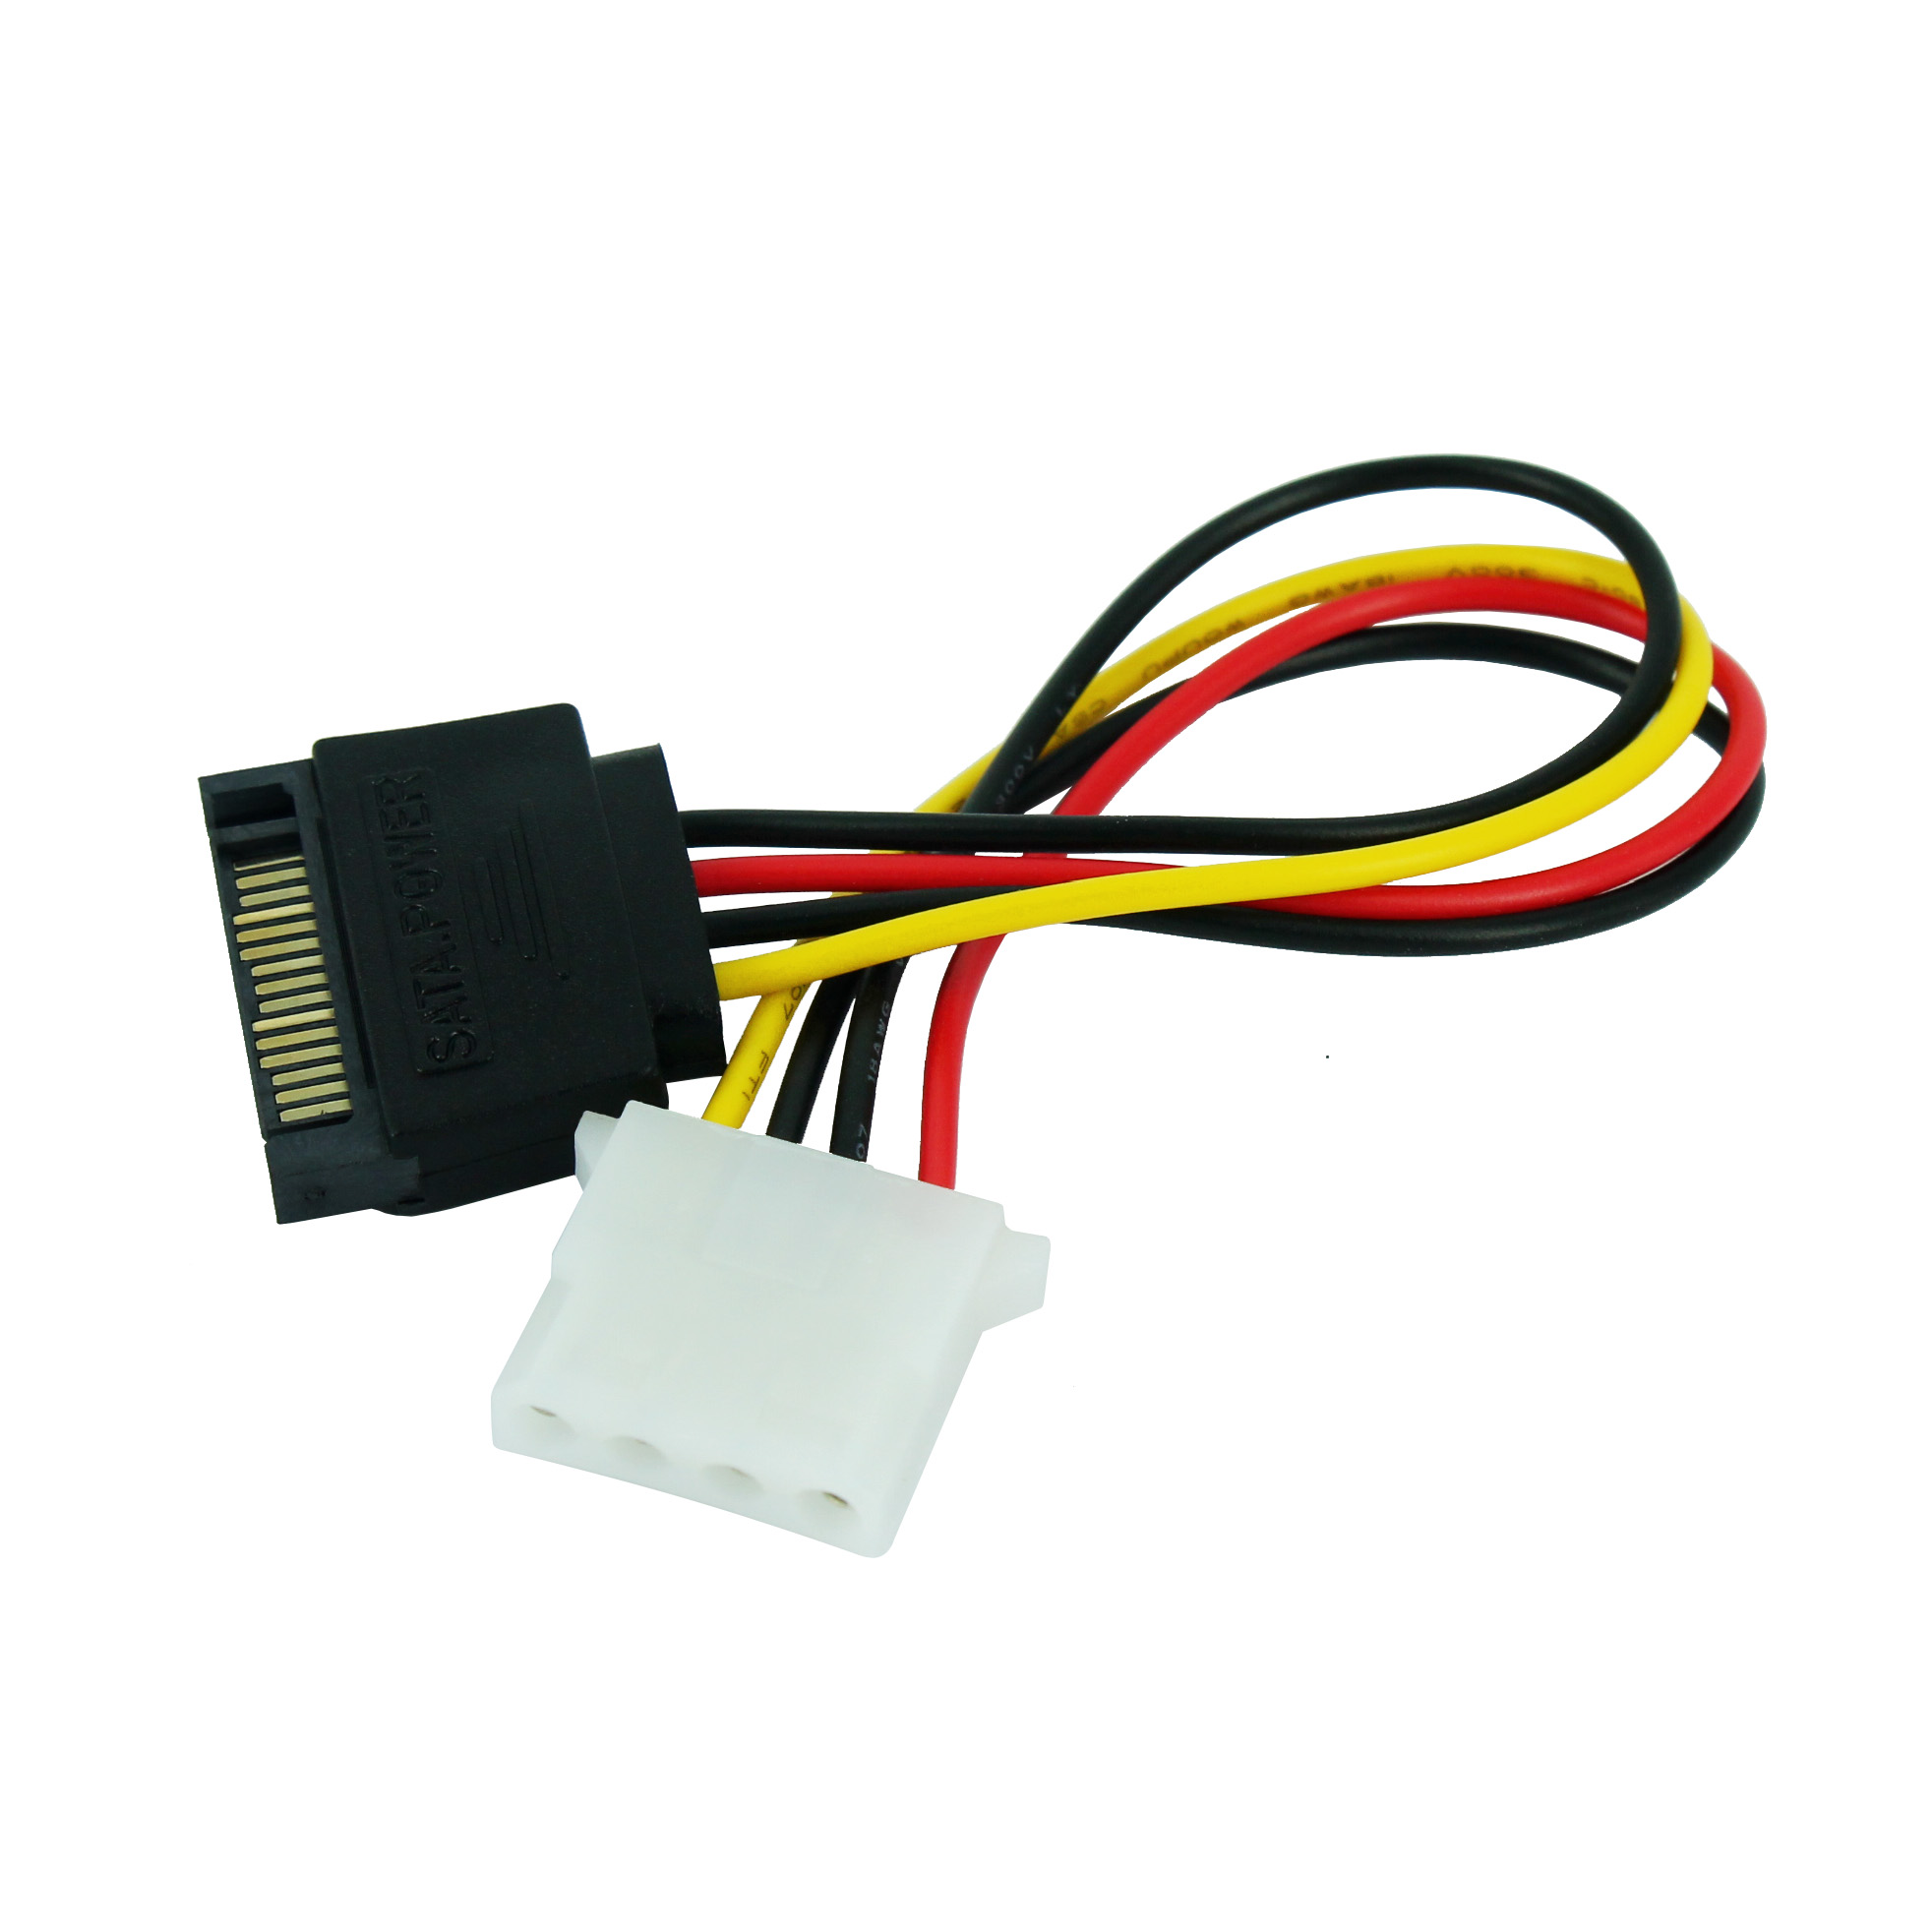 JONSNOW SATA Male To IDE 4 Pin Model Female Power Supply Computer Cable Extention Hard Drive Cable